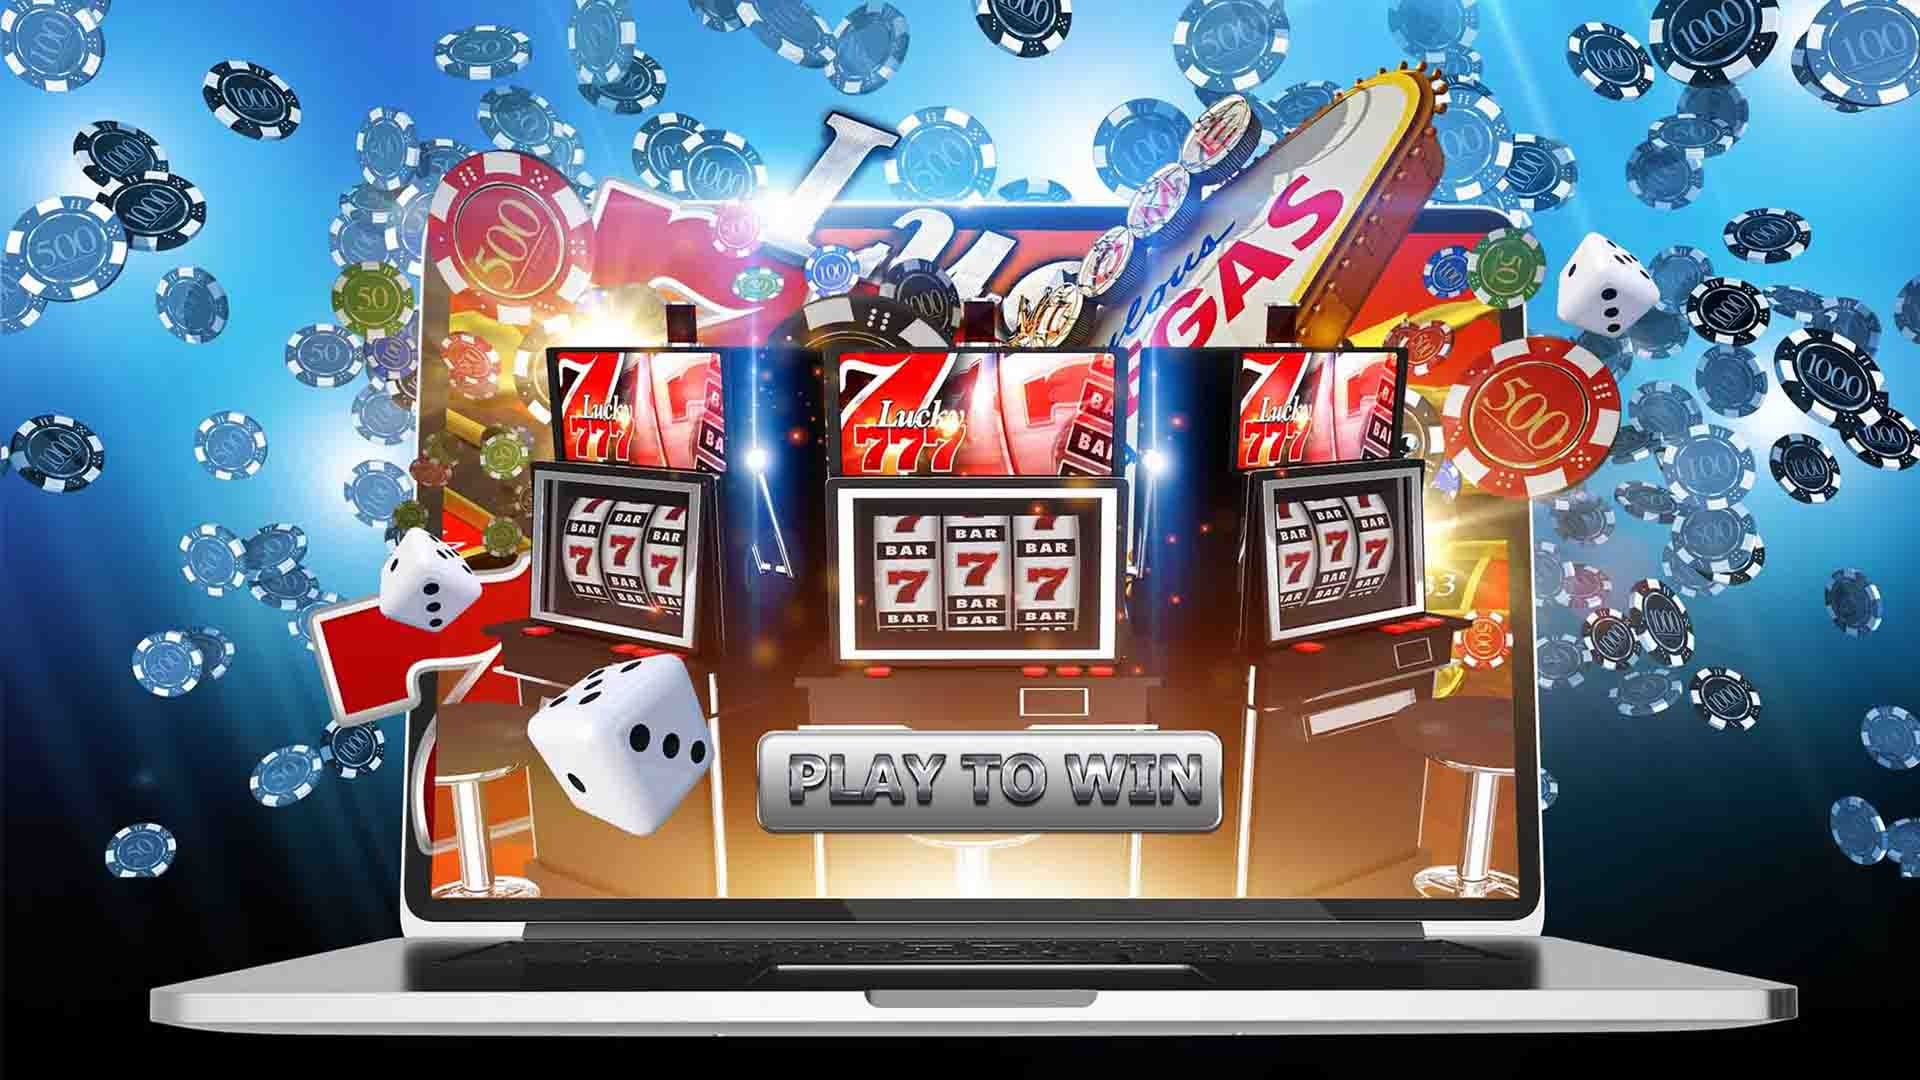 Is it ok to play games or do gambling in an online casino?